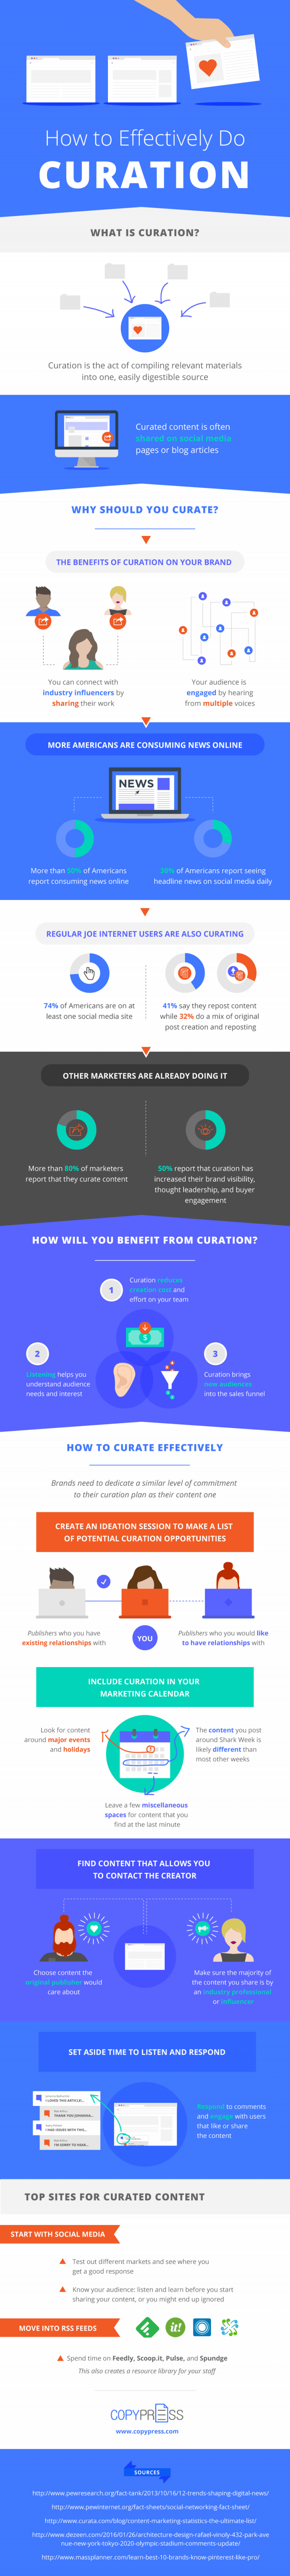 content curation infographic full